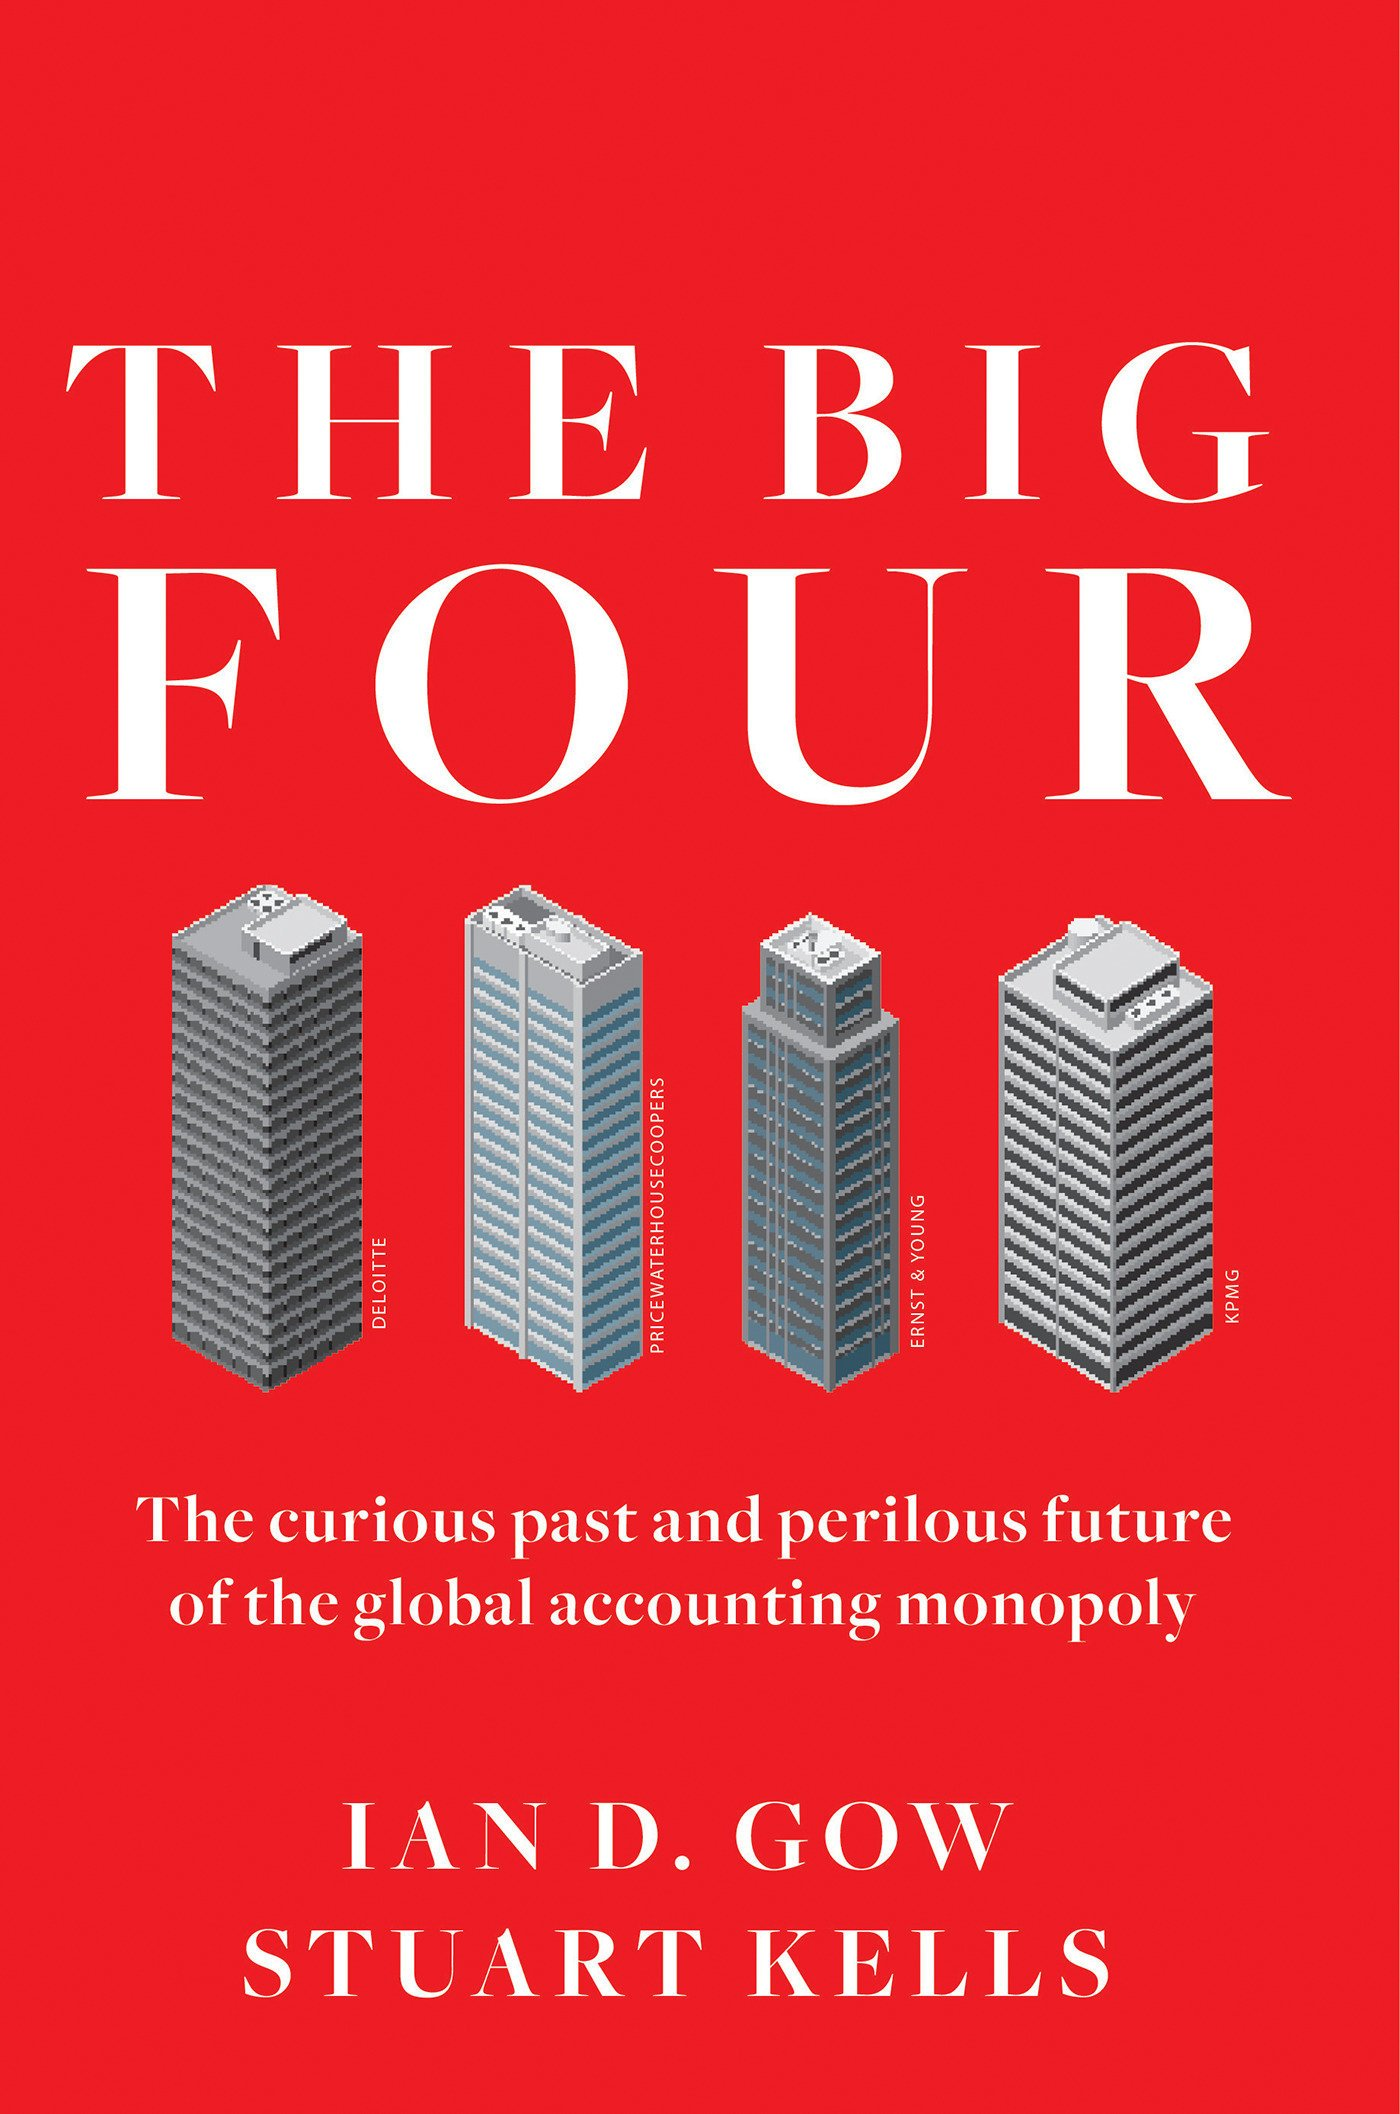 The Big Four: The Curious Past and Perilous Future of the Global Accounting Monopoly